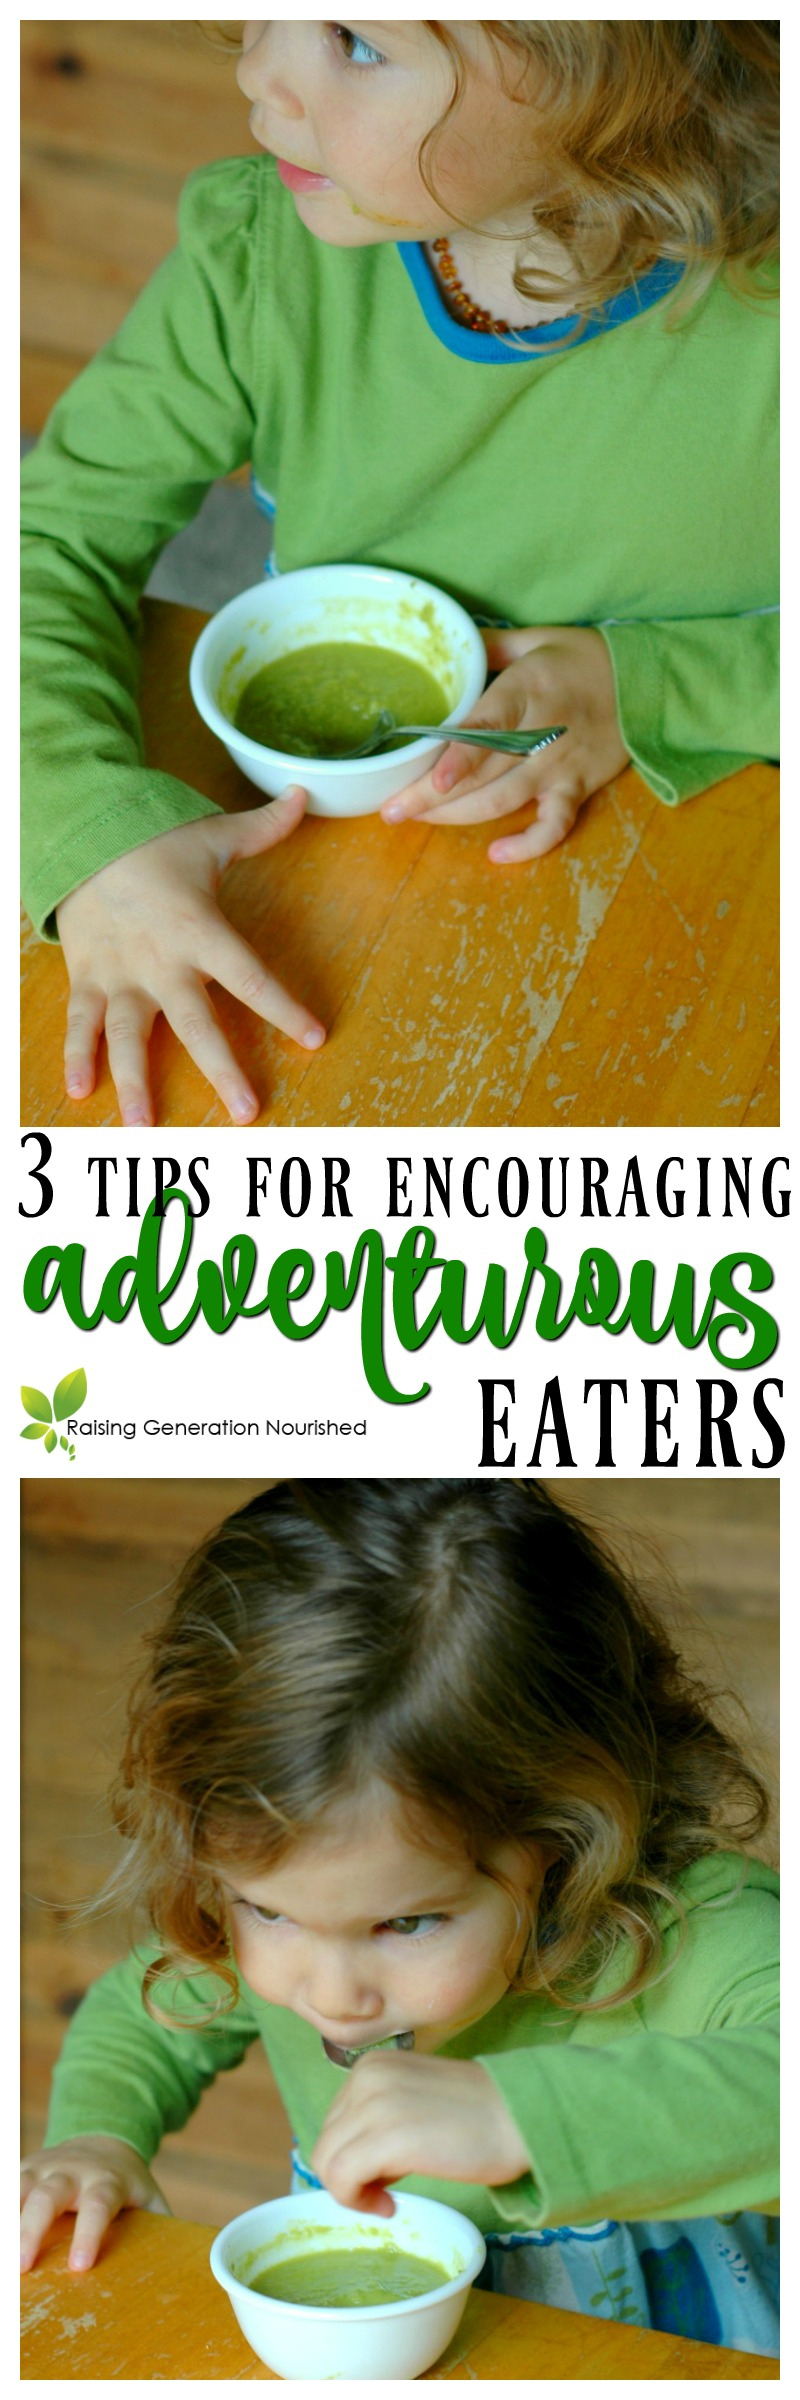 3 Tips For Encouraging Adventurous Eaters :: 3 simple tips you can start today for encouraging your babies and toddlers to be adventurous eaters!